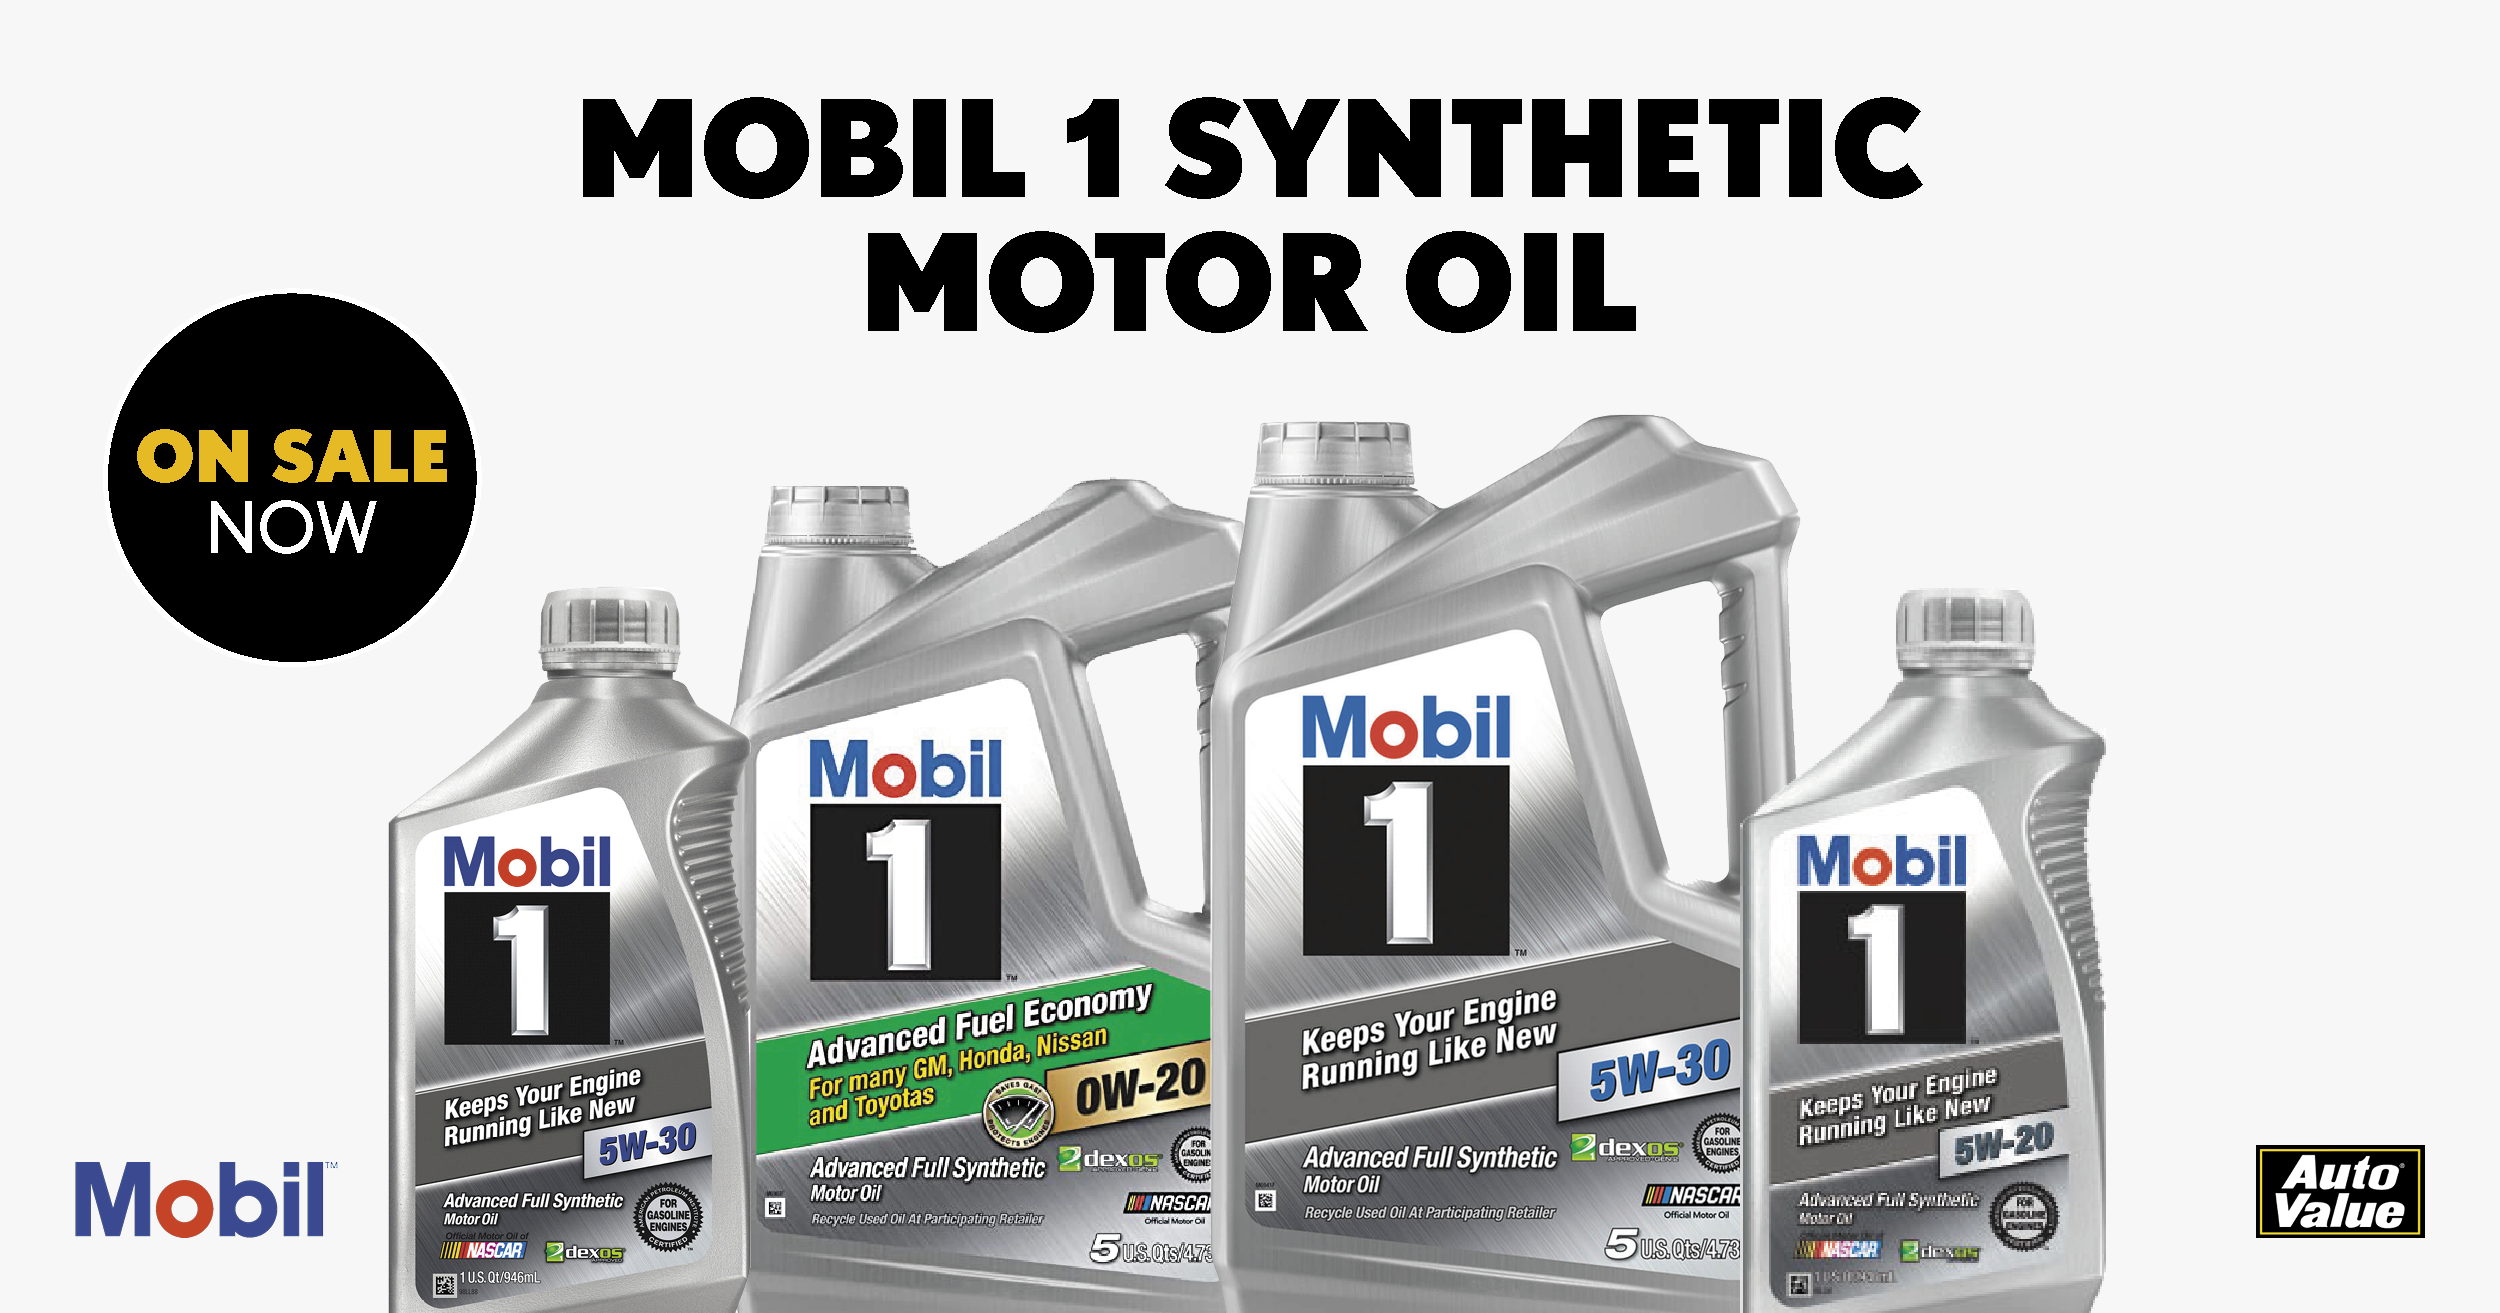 Mobil 1 Promotion